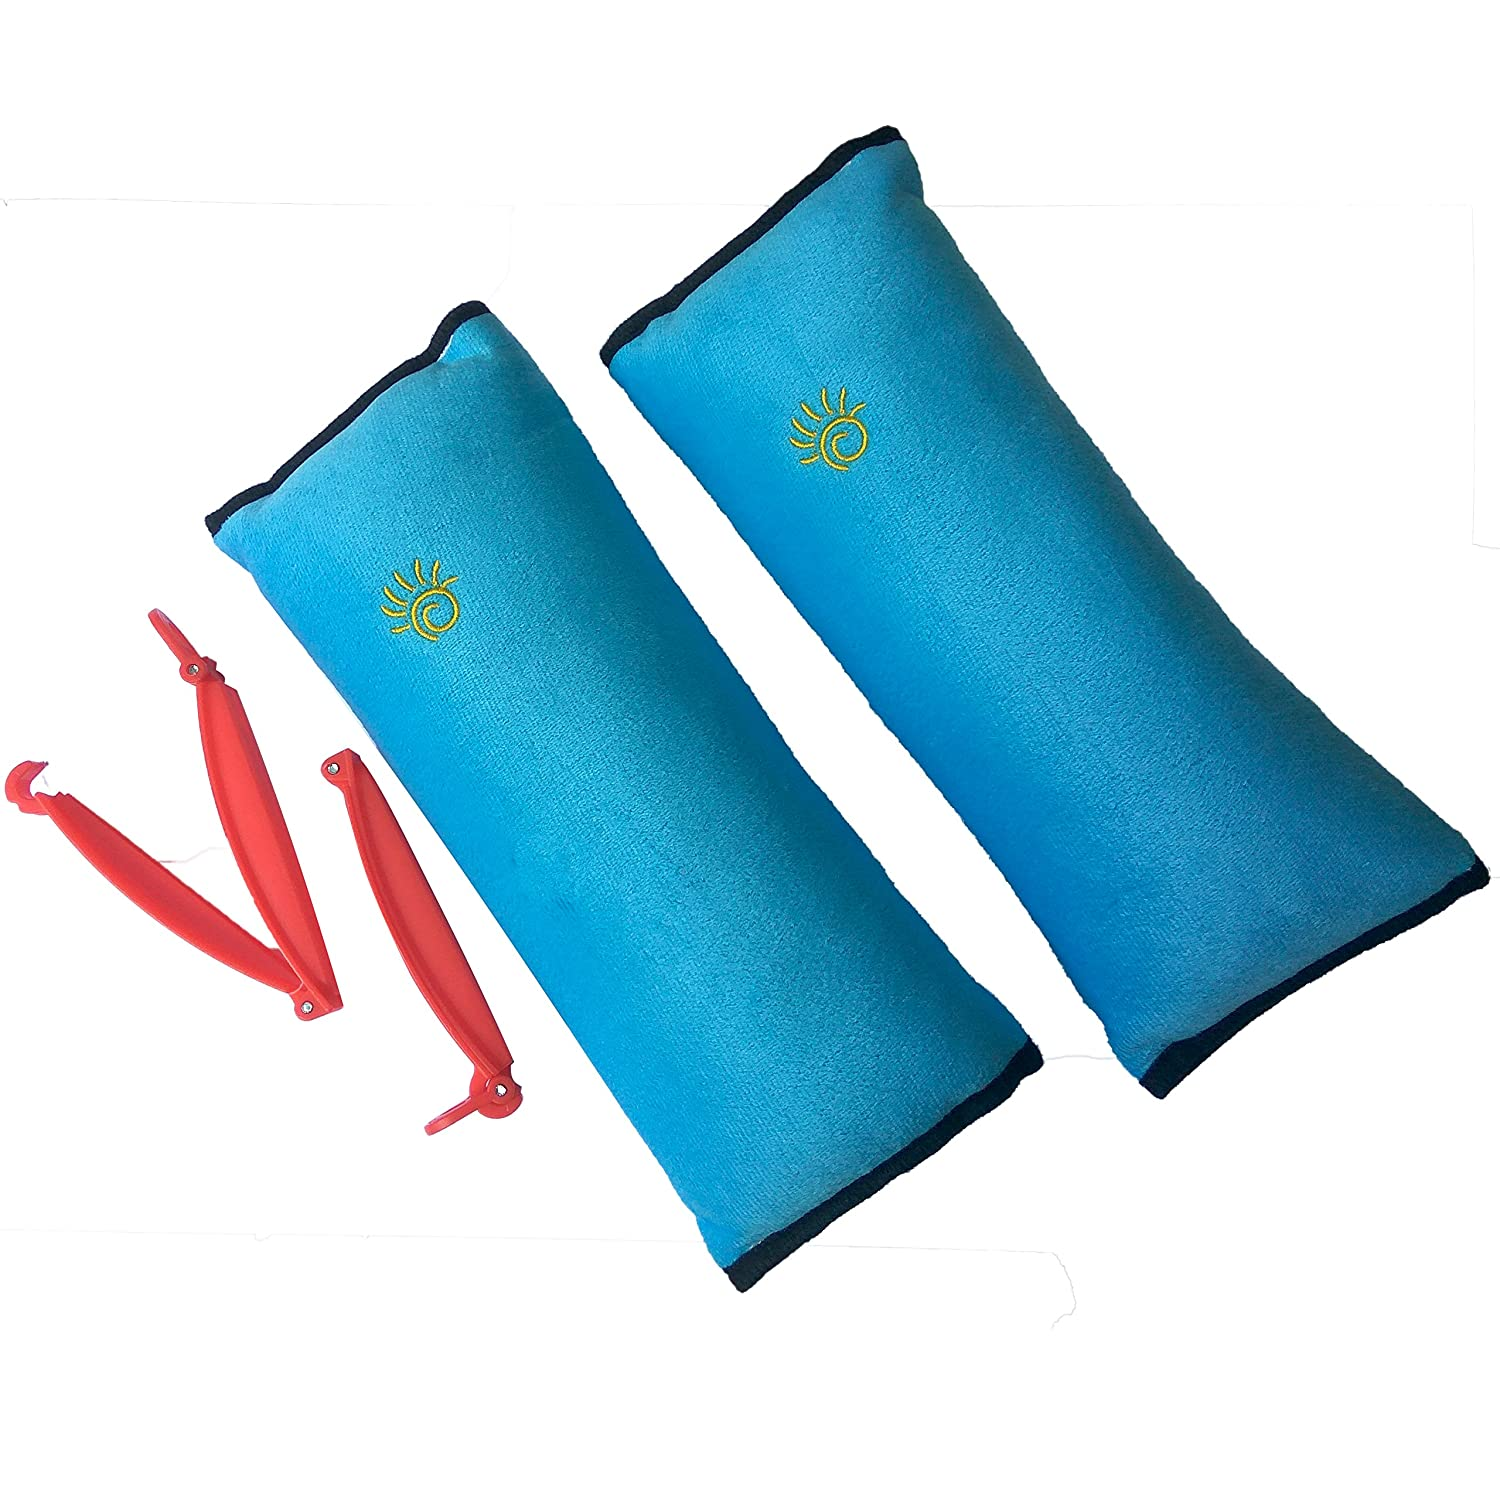 2 Car Seat Belt Pillows for Kids with 2 Seatbelt Clip - Headrest Neck Support Pads - Washable Covers - Adjust Vehicle Seat Belt Cushion for Children Our Daily Life